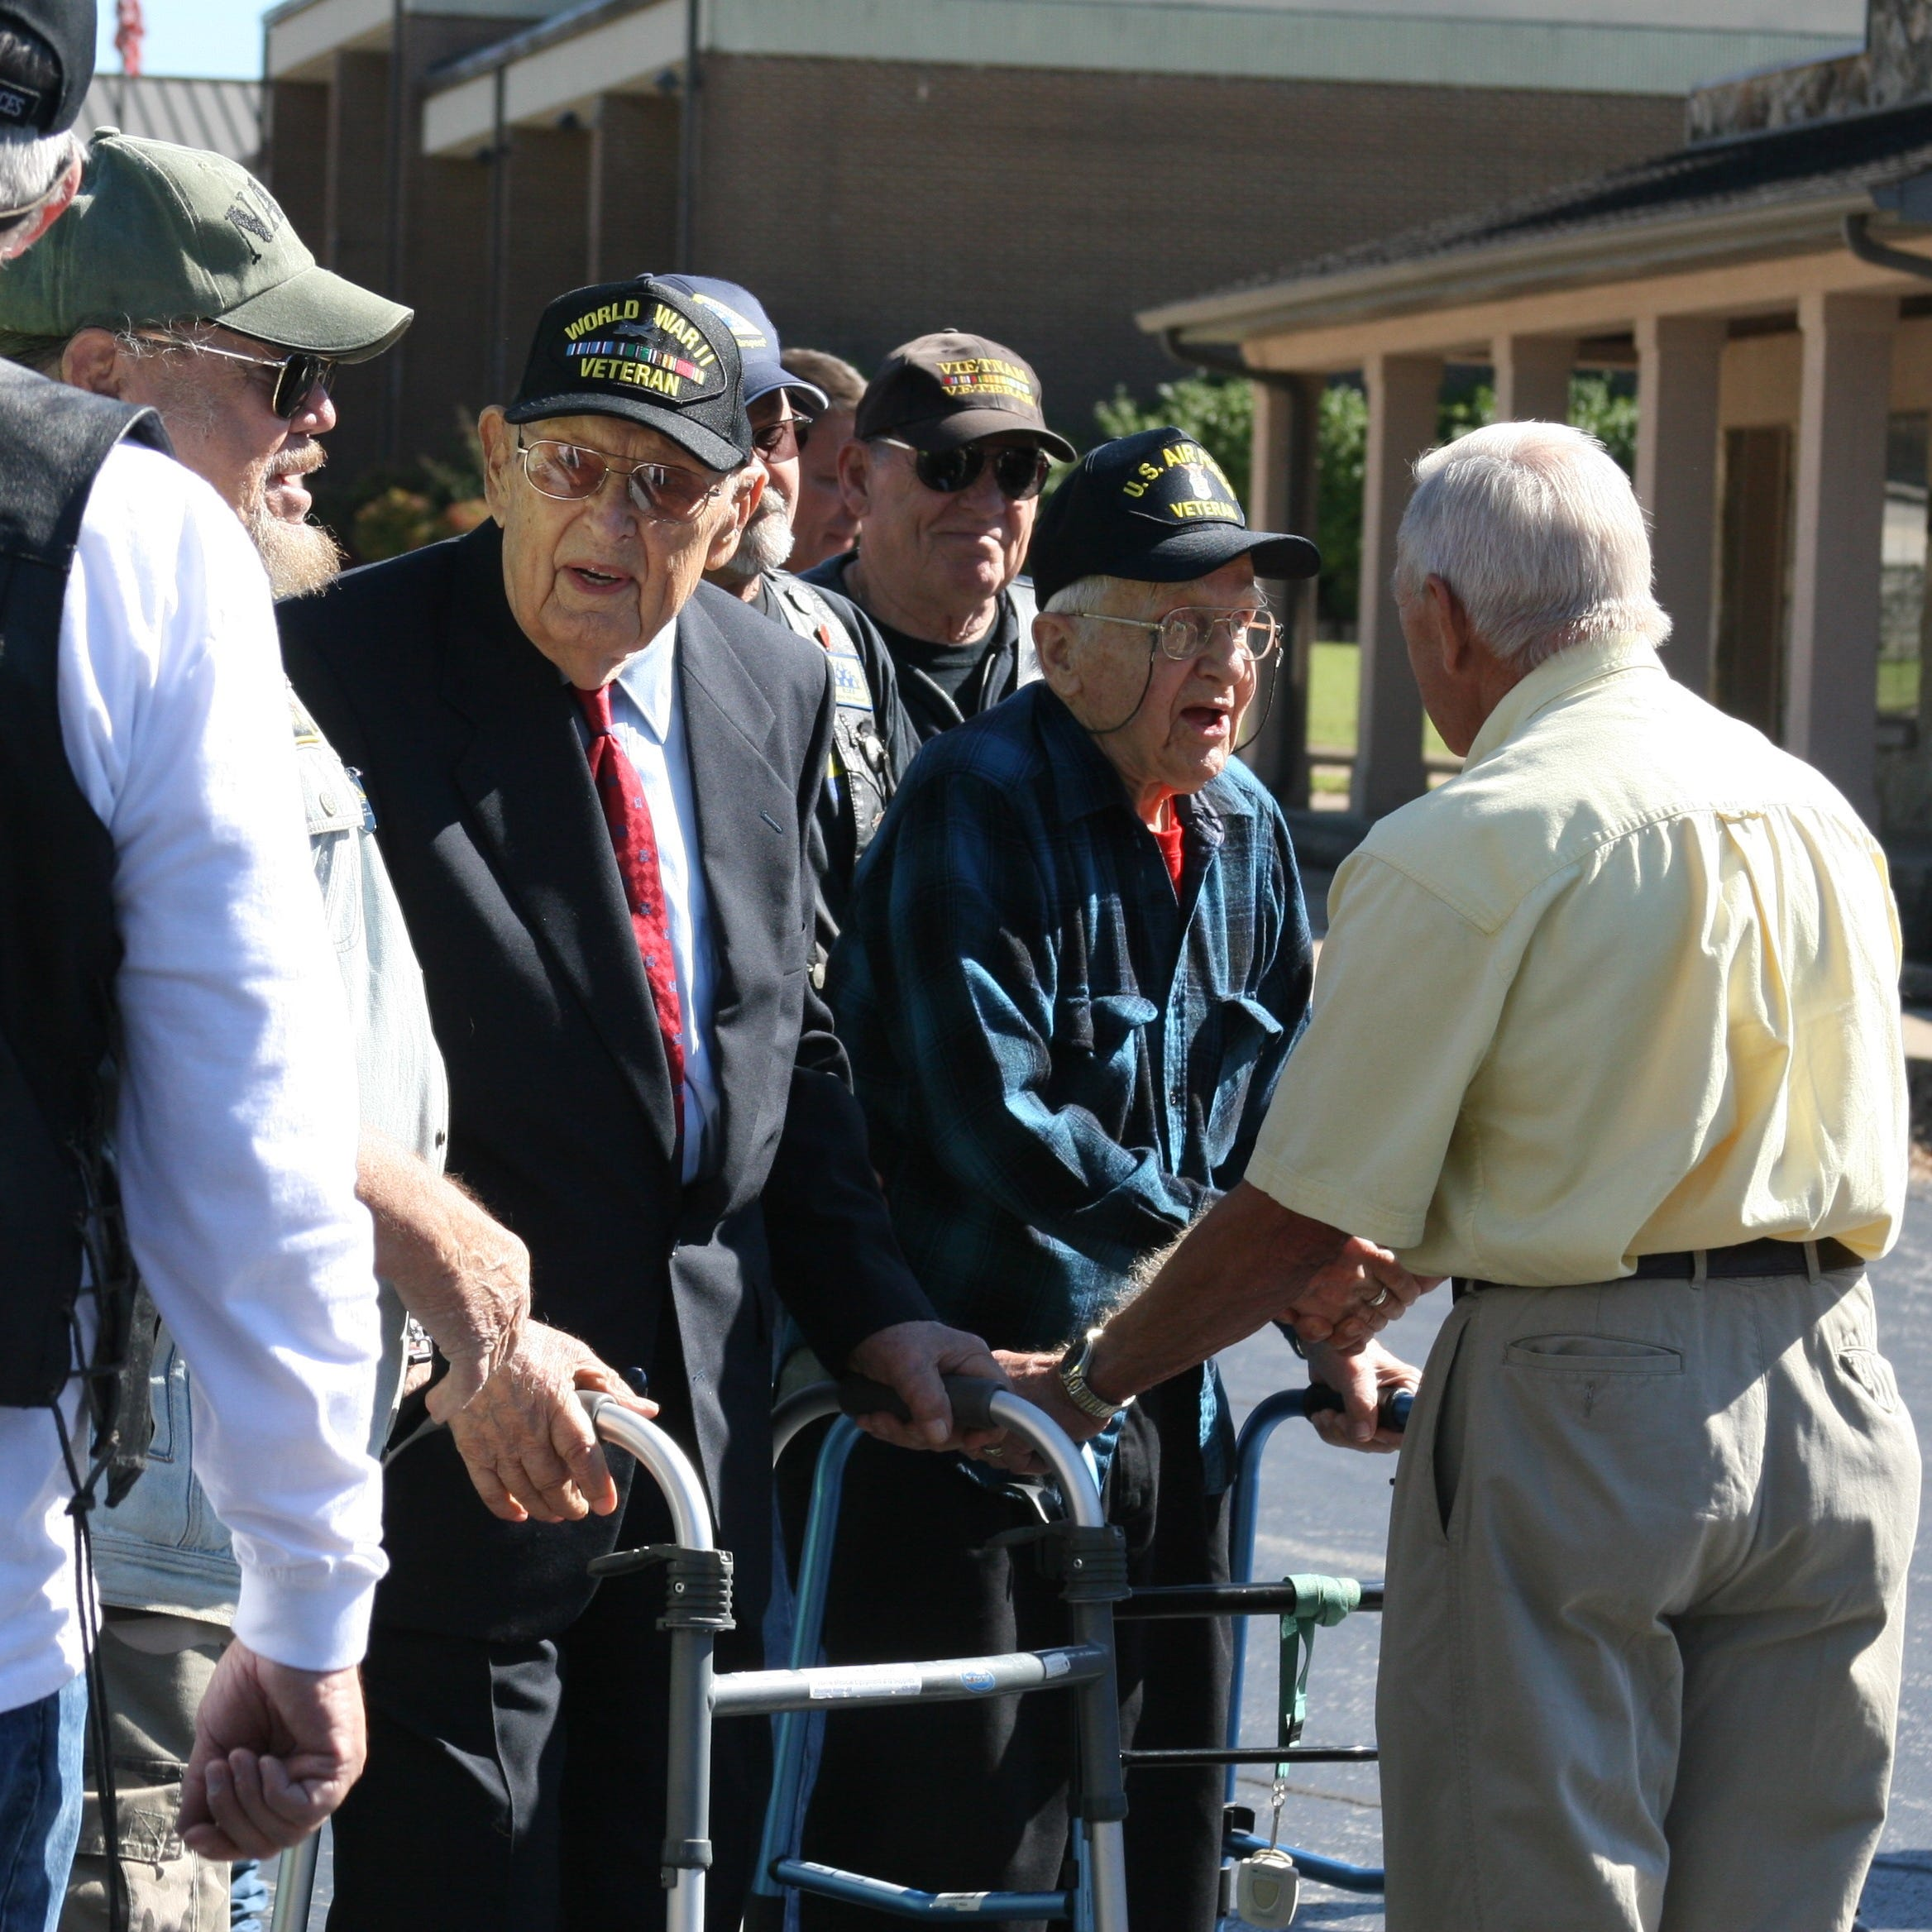 World War II veterans honored at surprise birthday party by Mountain Home community